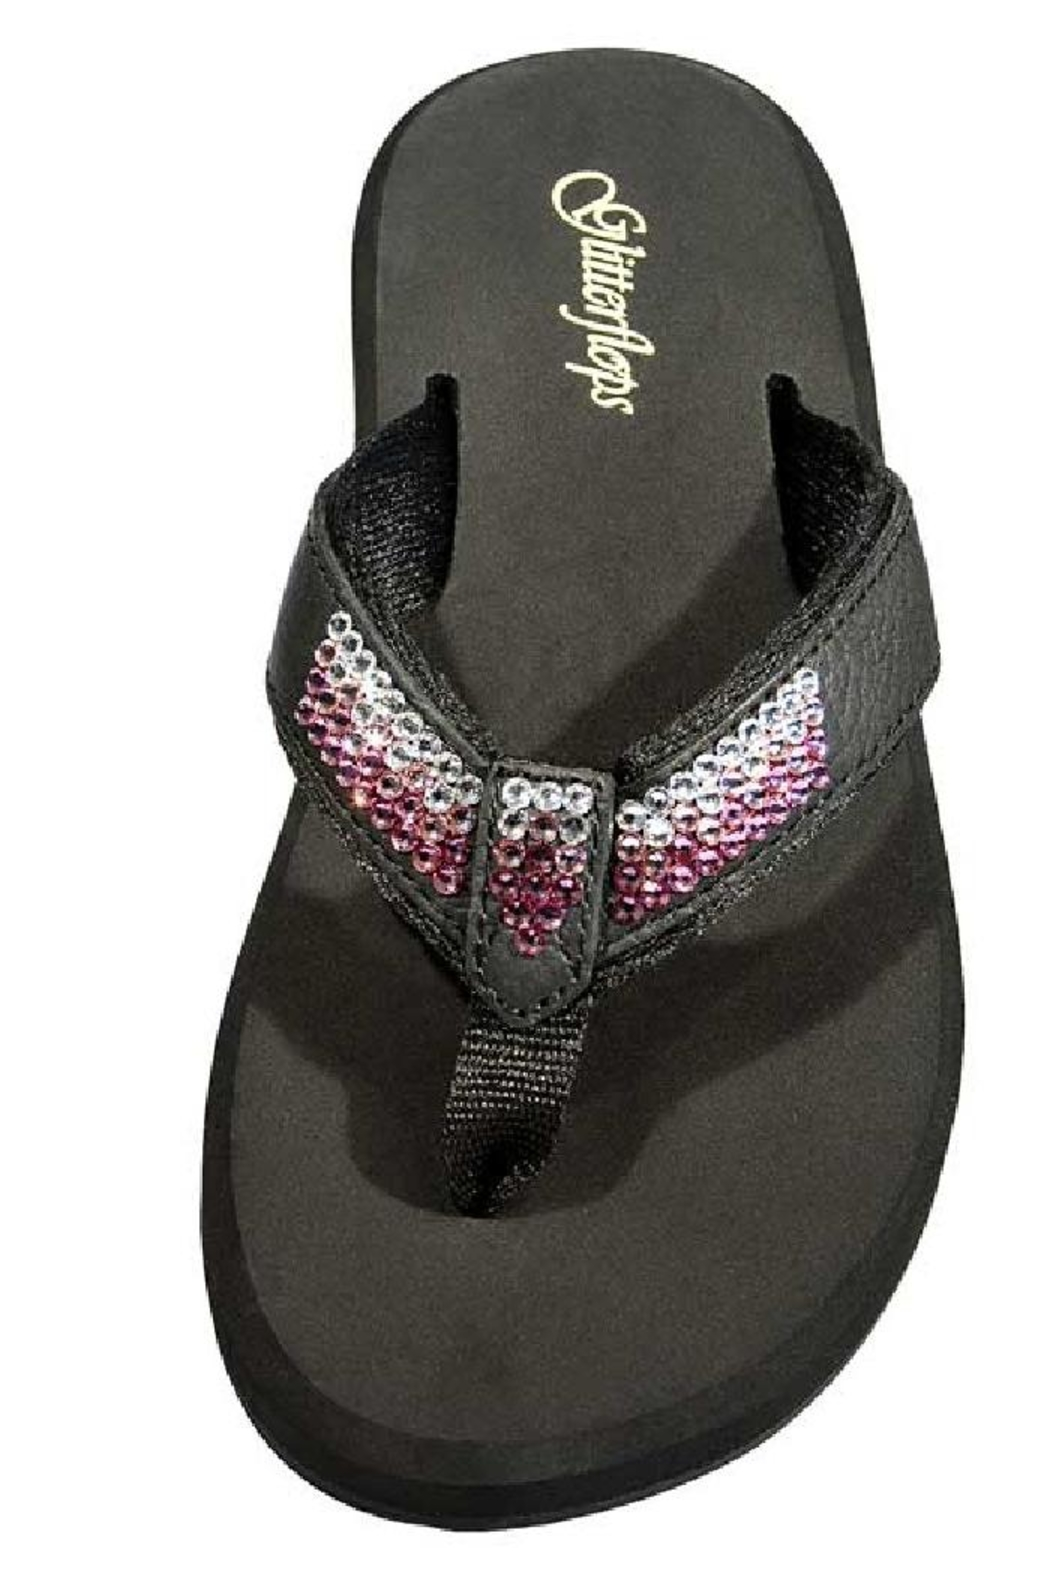 ddbc3b7d2 Glitterflops Ombre Flip Flops from Texas by Rock2Royal Boutique ...